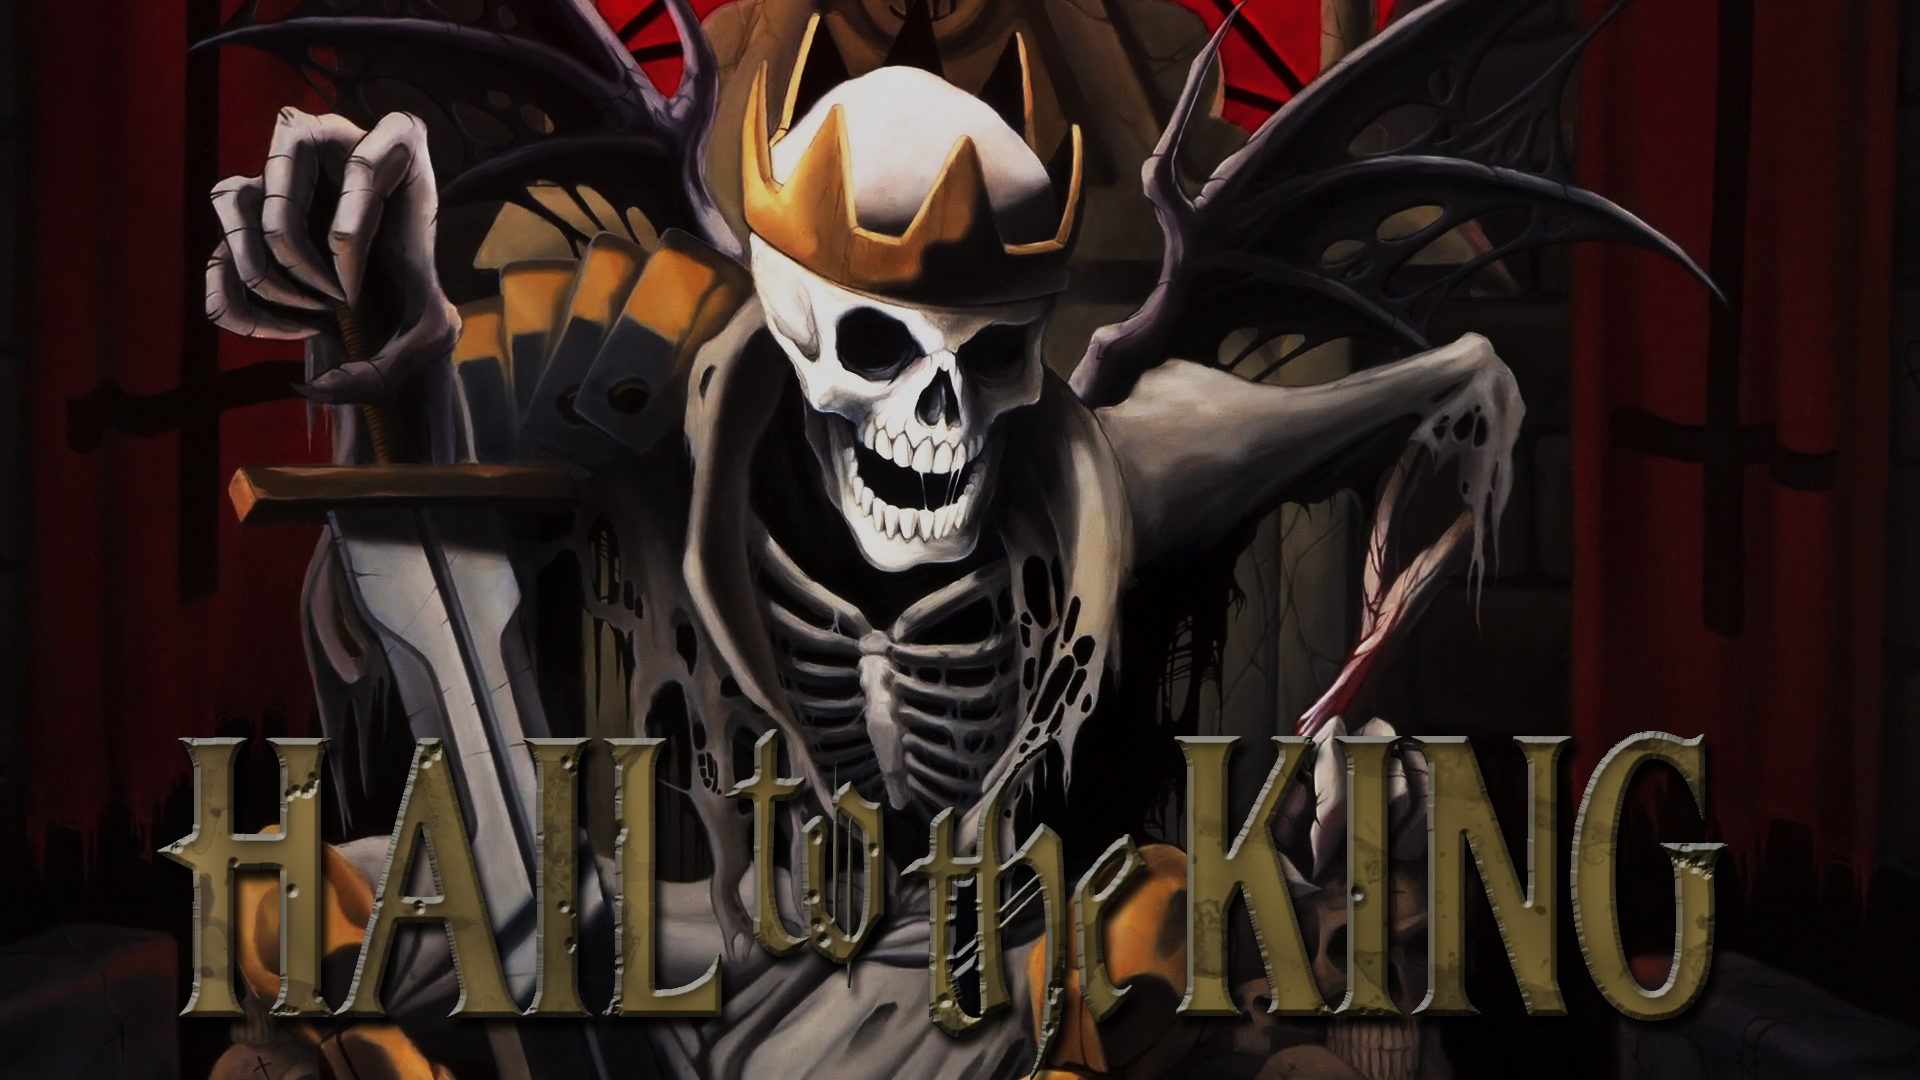 Hail to the King Avenged Sevenfold wallpaper by ChaoticHazard on 1920x1080